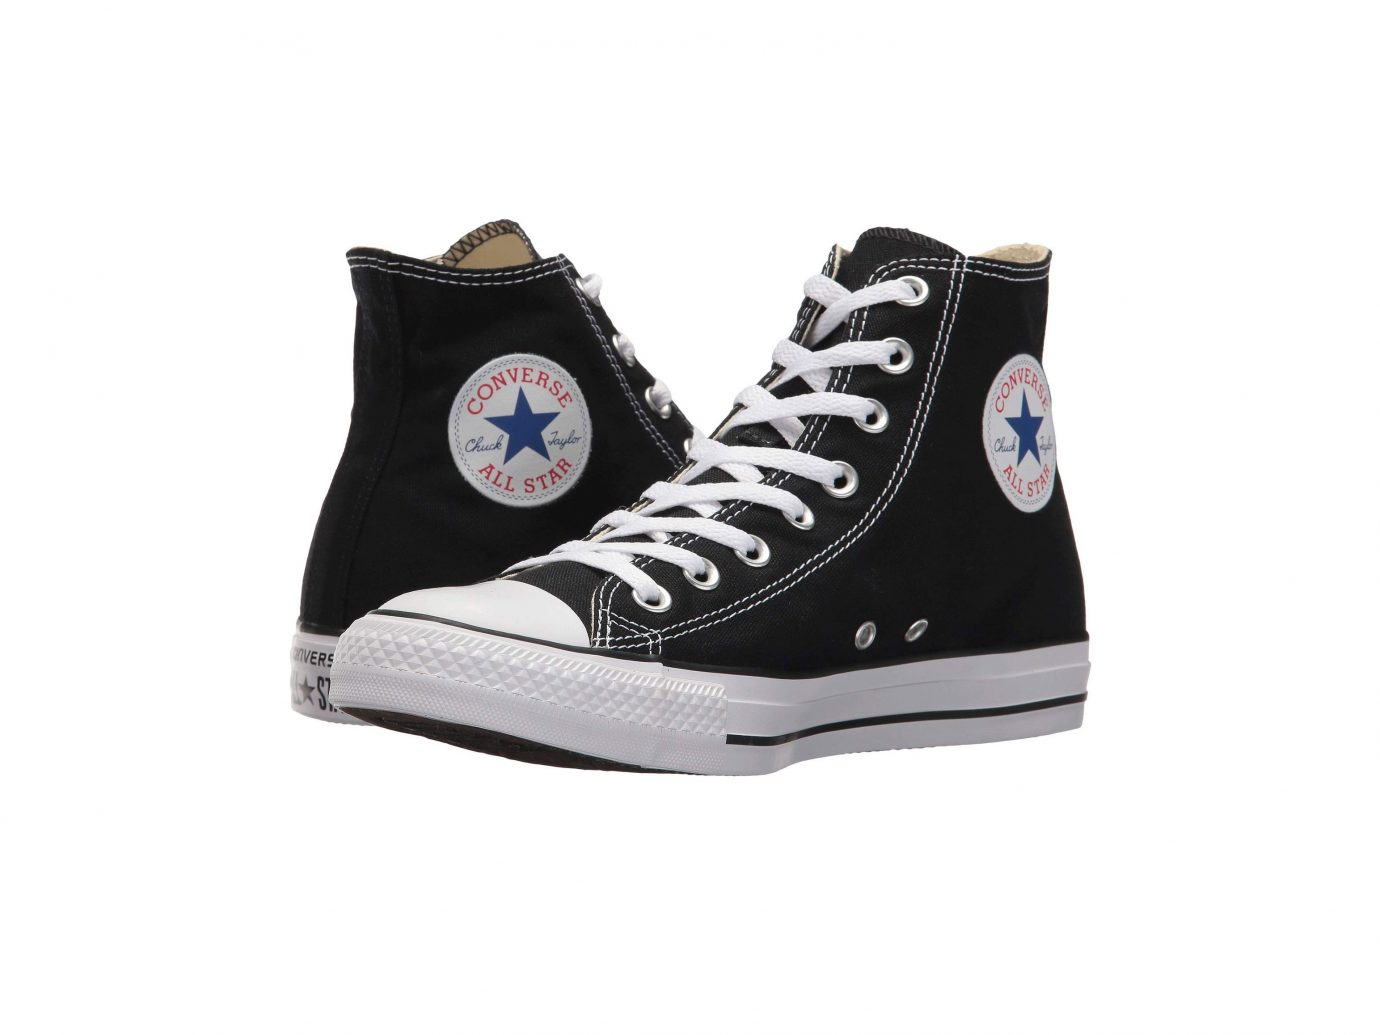 Converse Chuck Taylor All Star Core Hi Sneakers